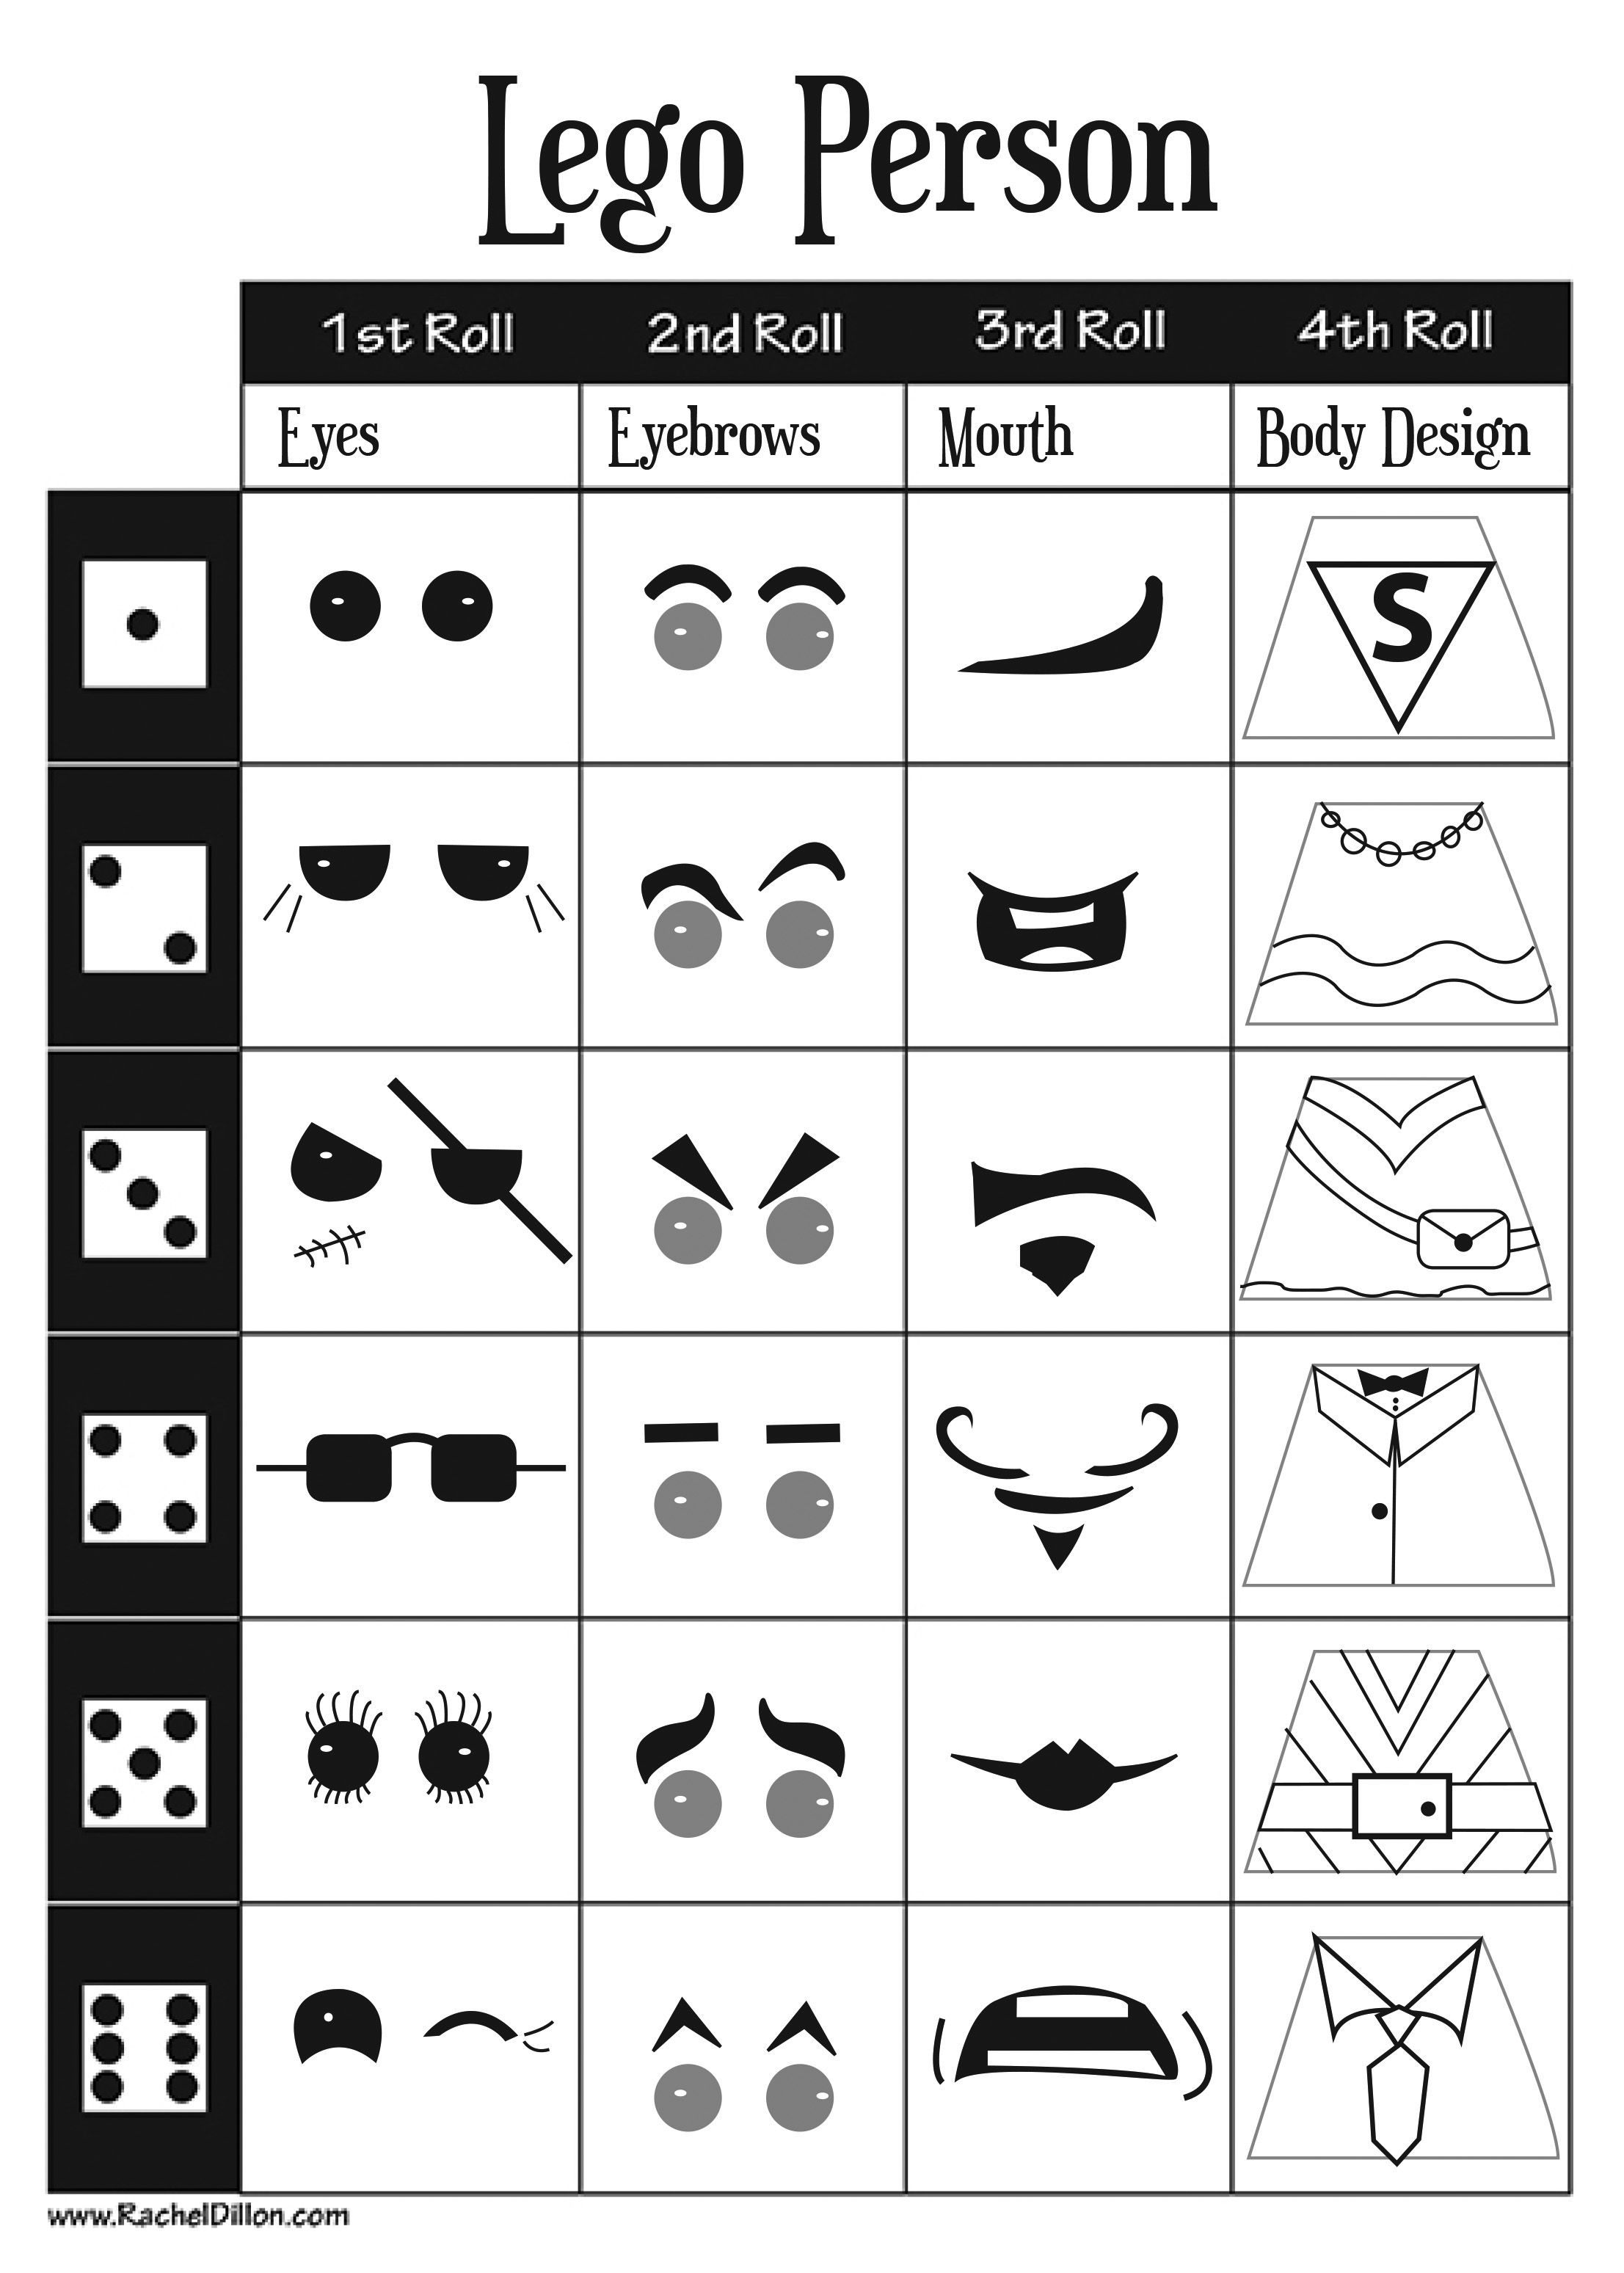 Lego Person Dice Game For Kids Art Project This Is A Great Sheet For Kids To Work Off Of When